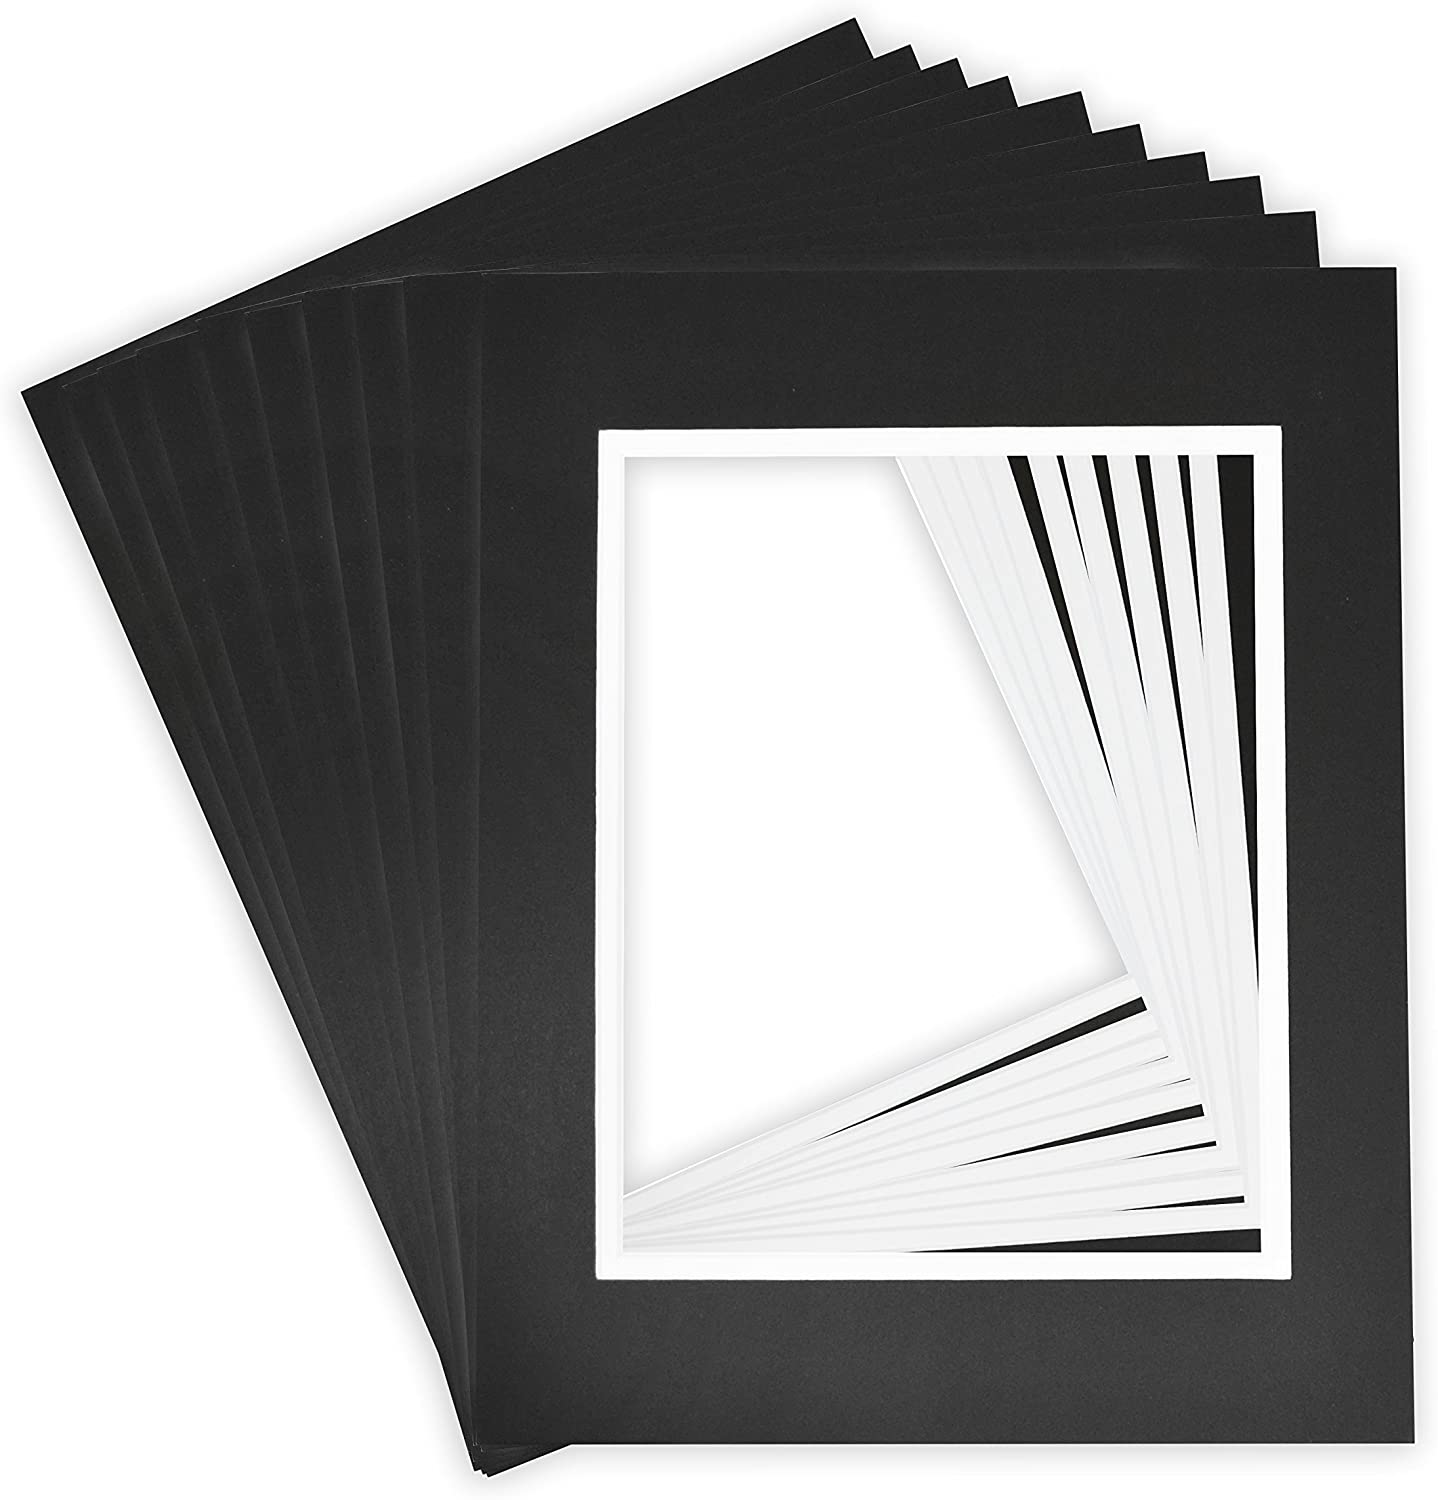 Bags Golden State Art Pack of 10 11X14 Double Picture Mats with White Core Bevel Cut for 8X10 Pictures Backing Black Over Black